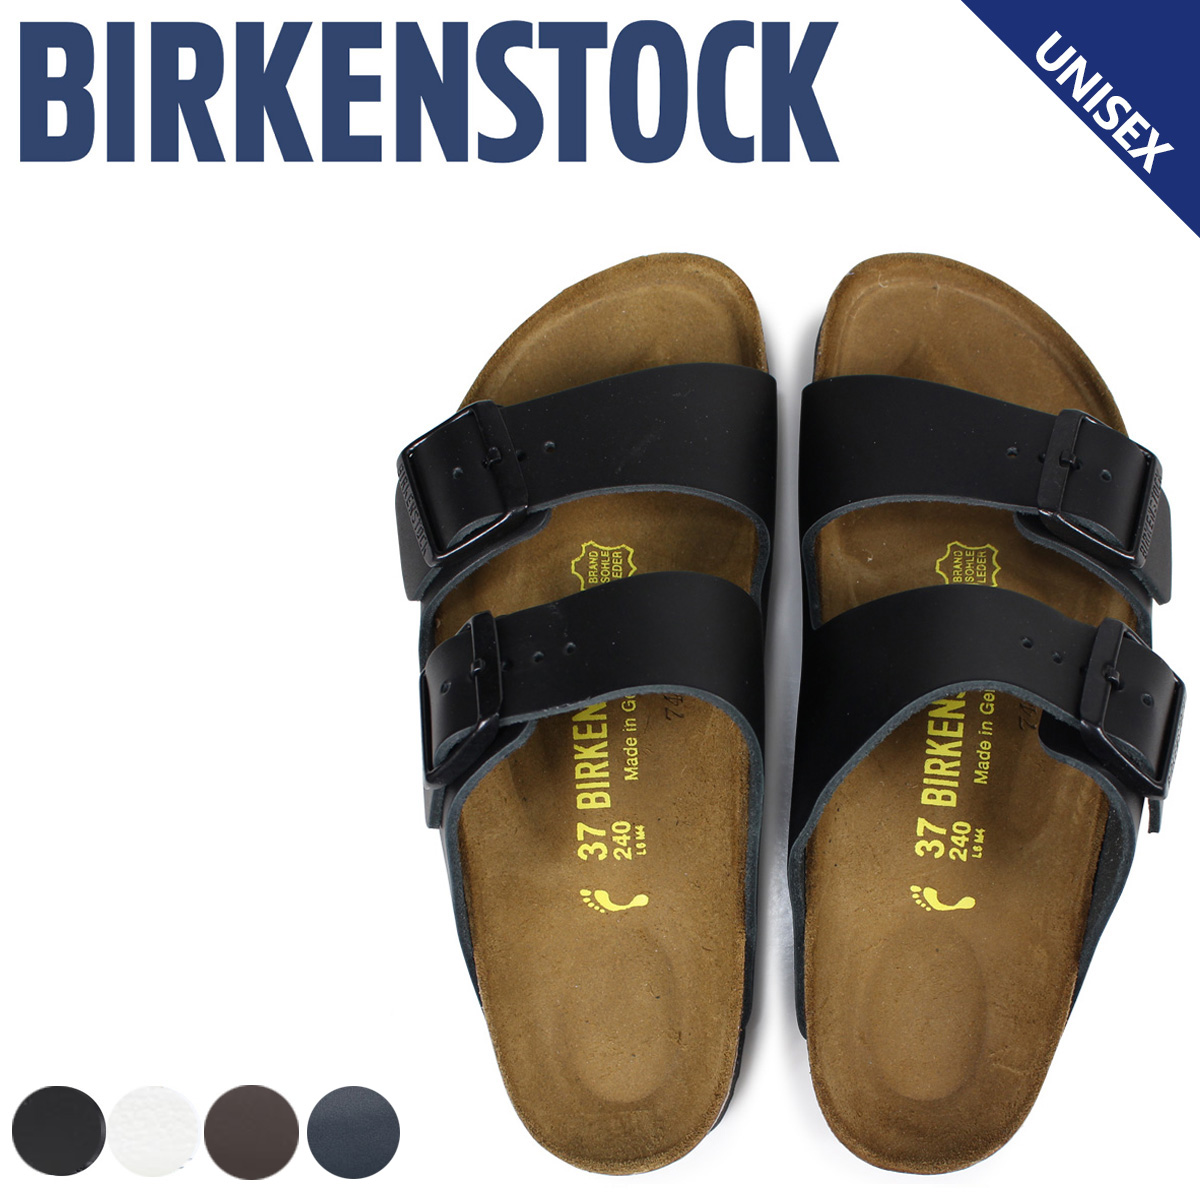 2e199c0b02ea Whats up Sports   SOLD OUT  BIRKENSTOCK-Birkenstock Arizona vilken Sandals  usually wide ARIZONA NL mens